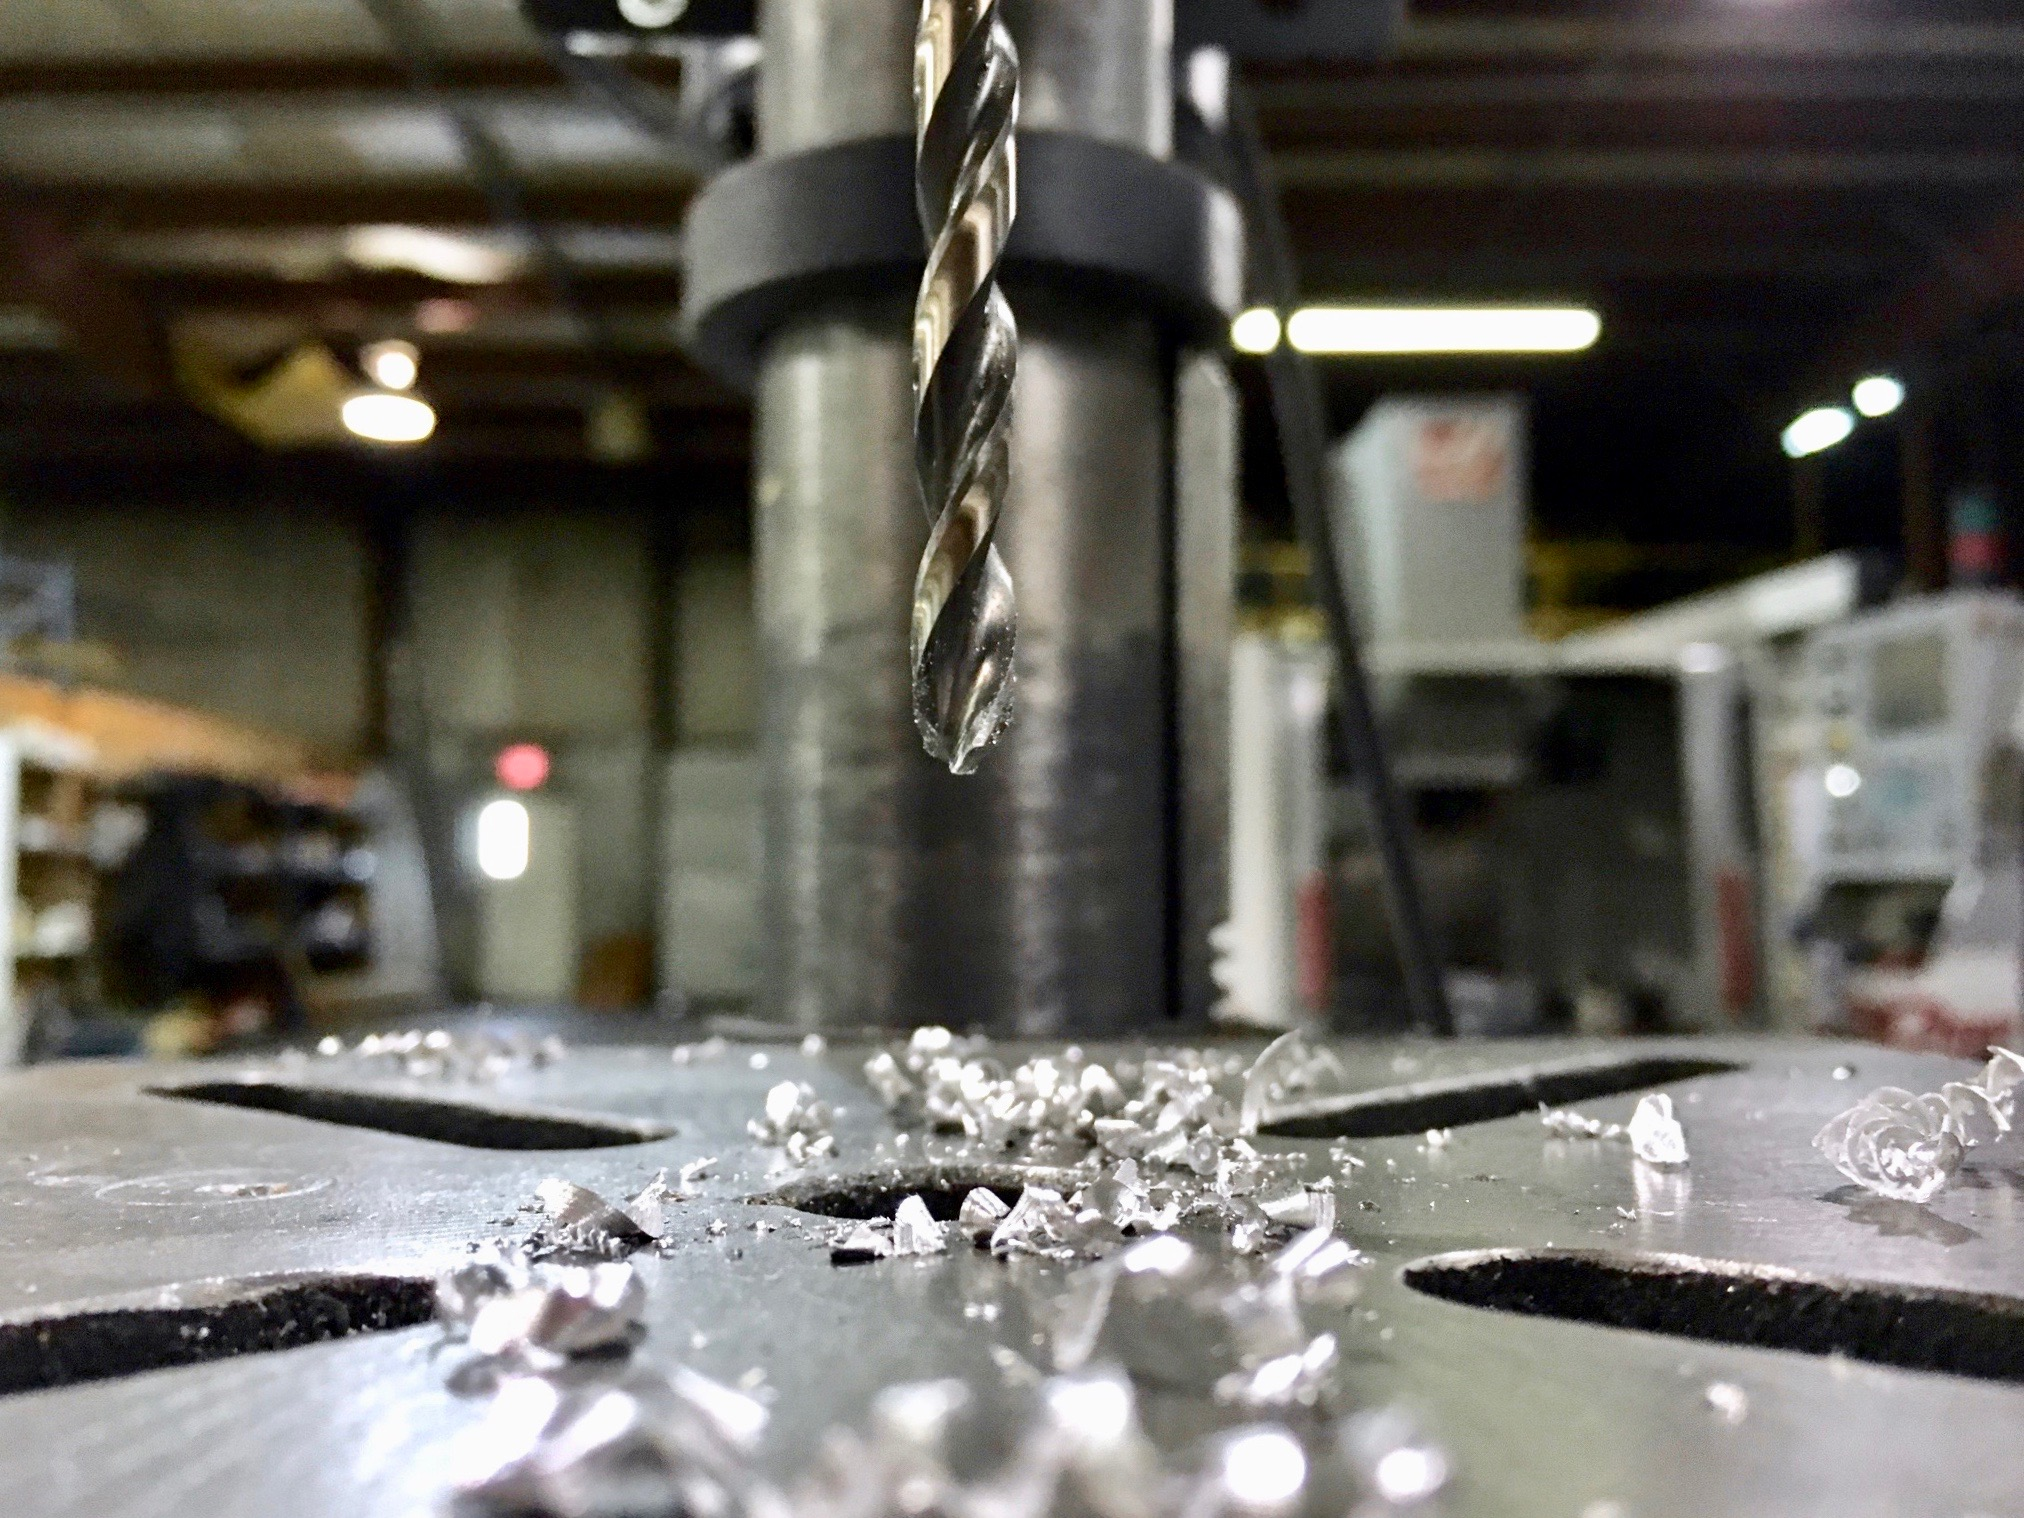 Services - We provide custom machining, fabrication, and welding services. Discover more about our services.